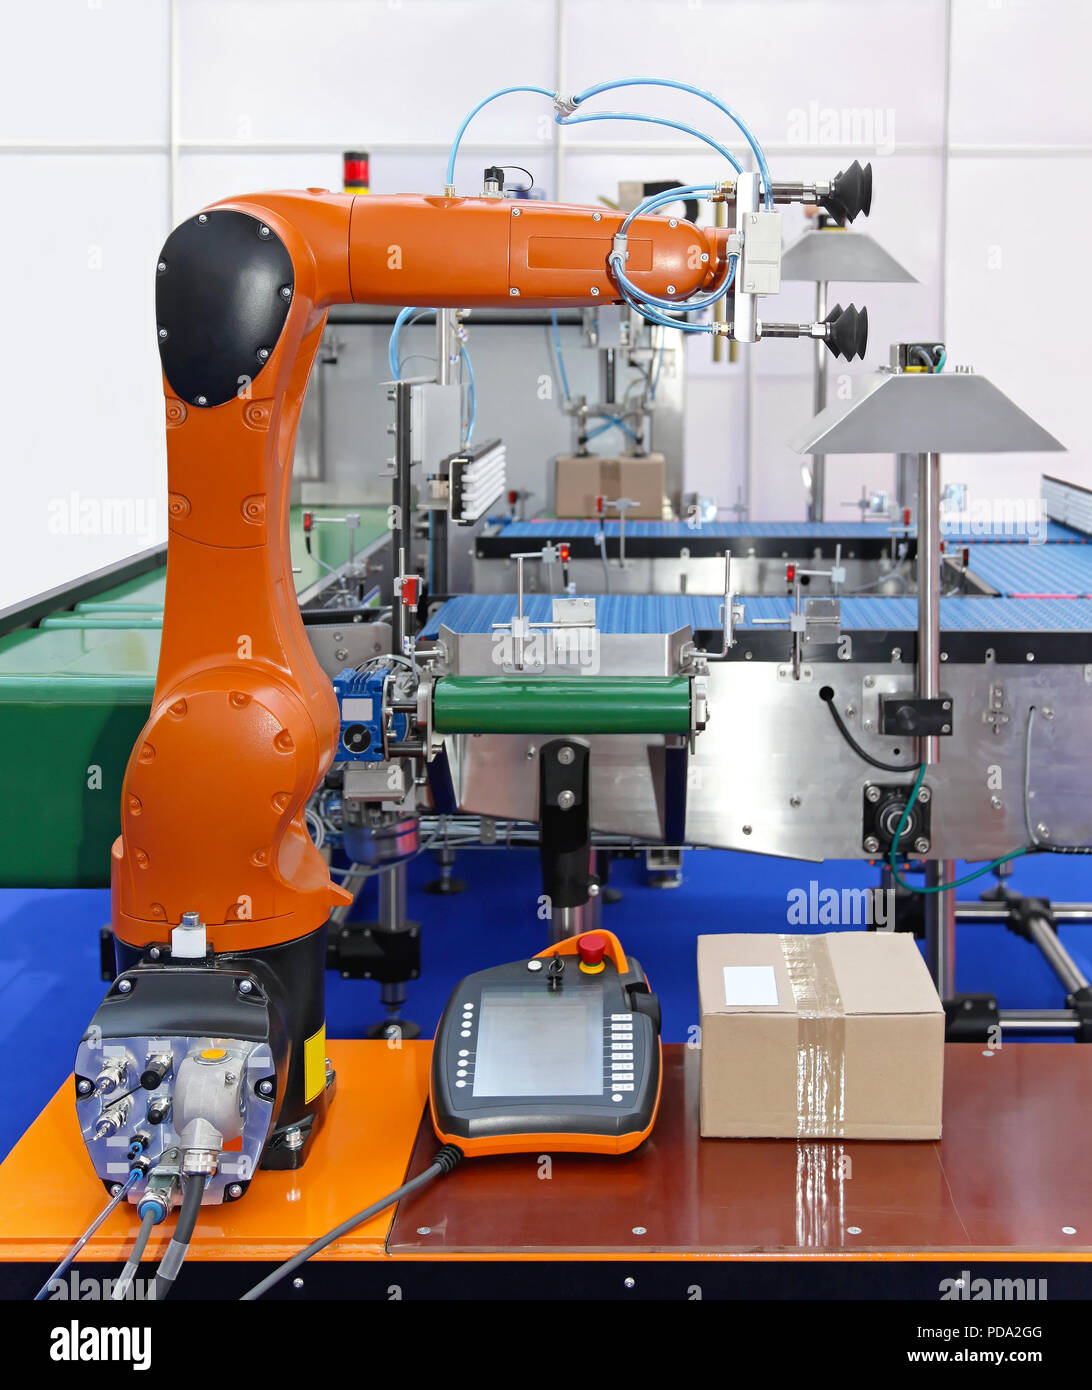 Articulated robot at packaging line in factory Stock Photo